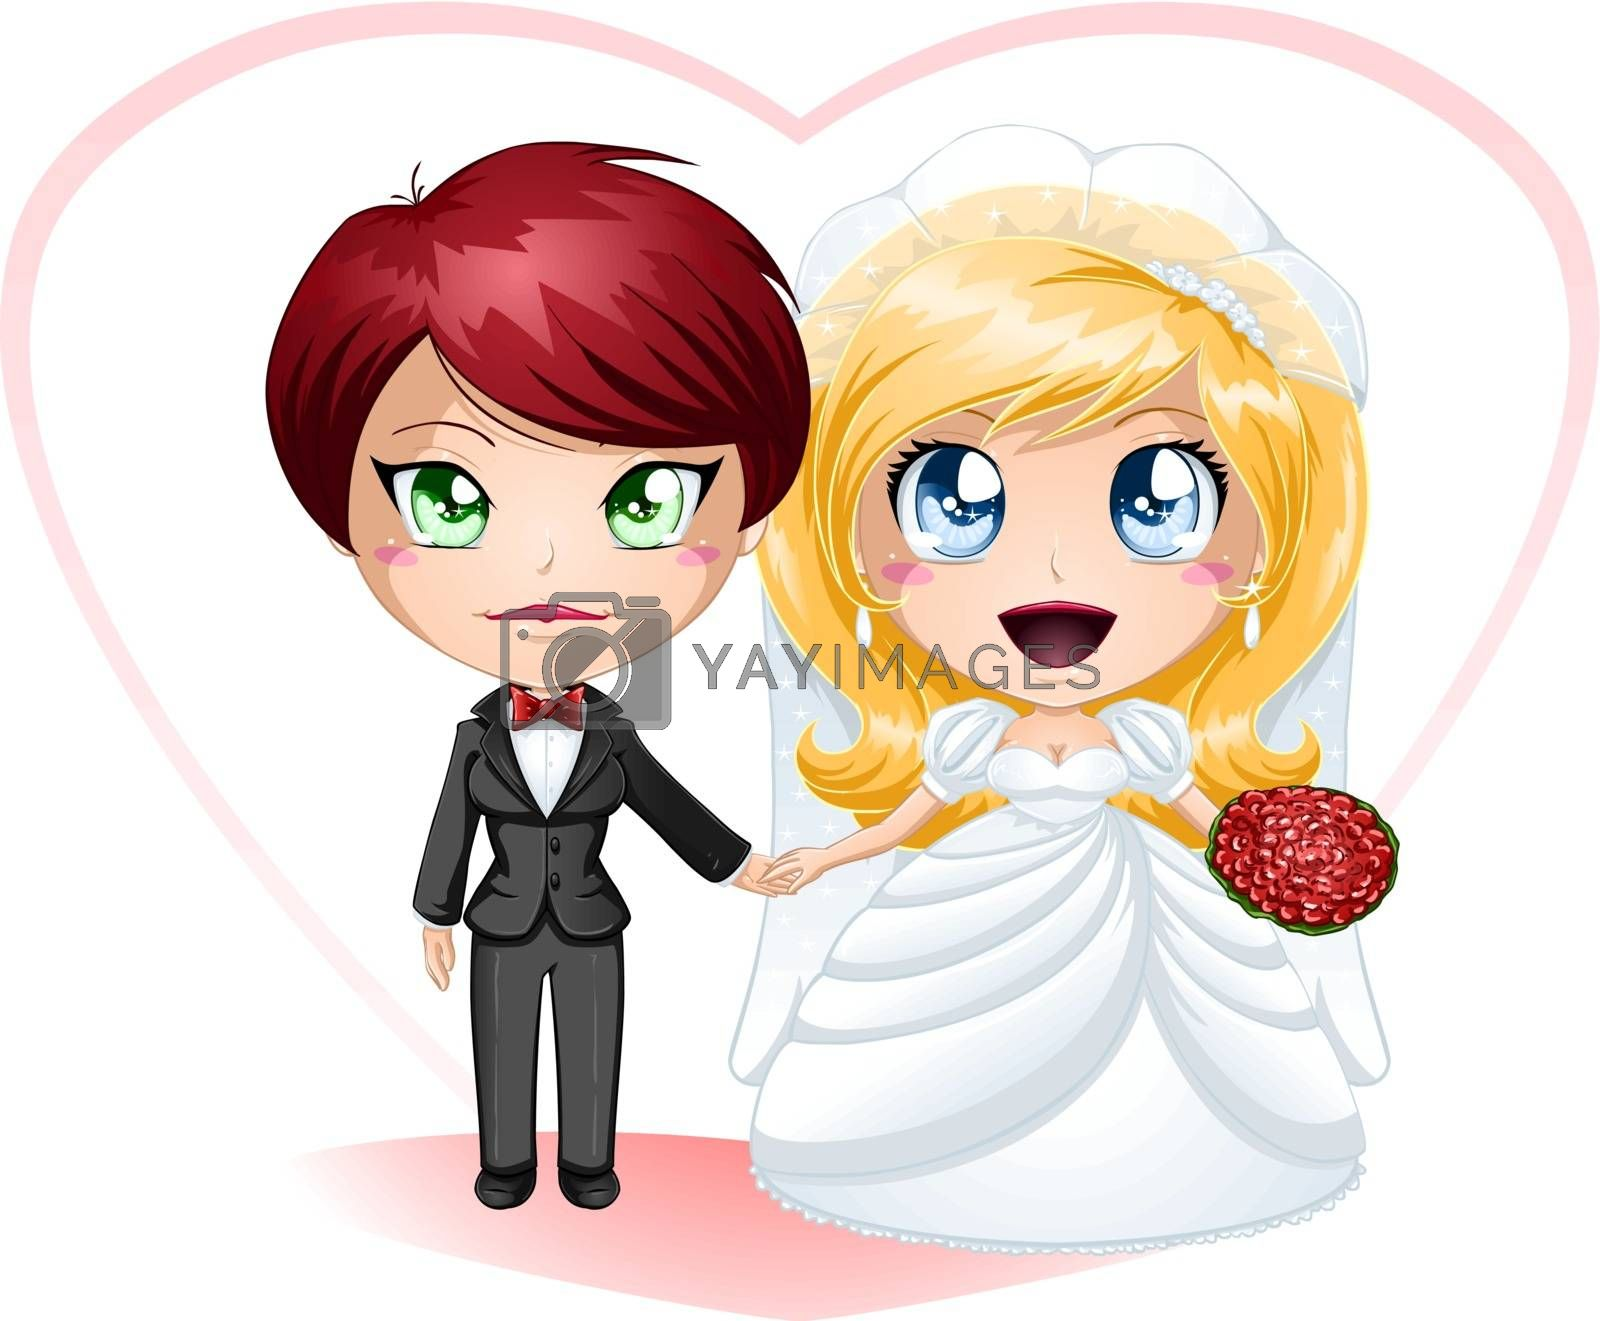 A vector illustration of lesbians dressed in dress and suit for their wedding day.